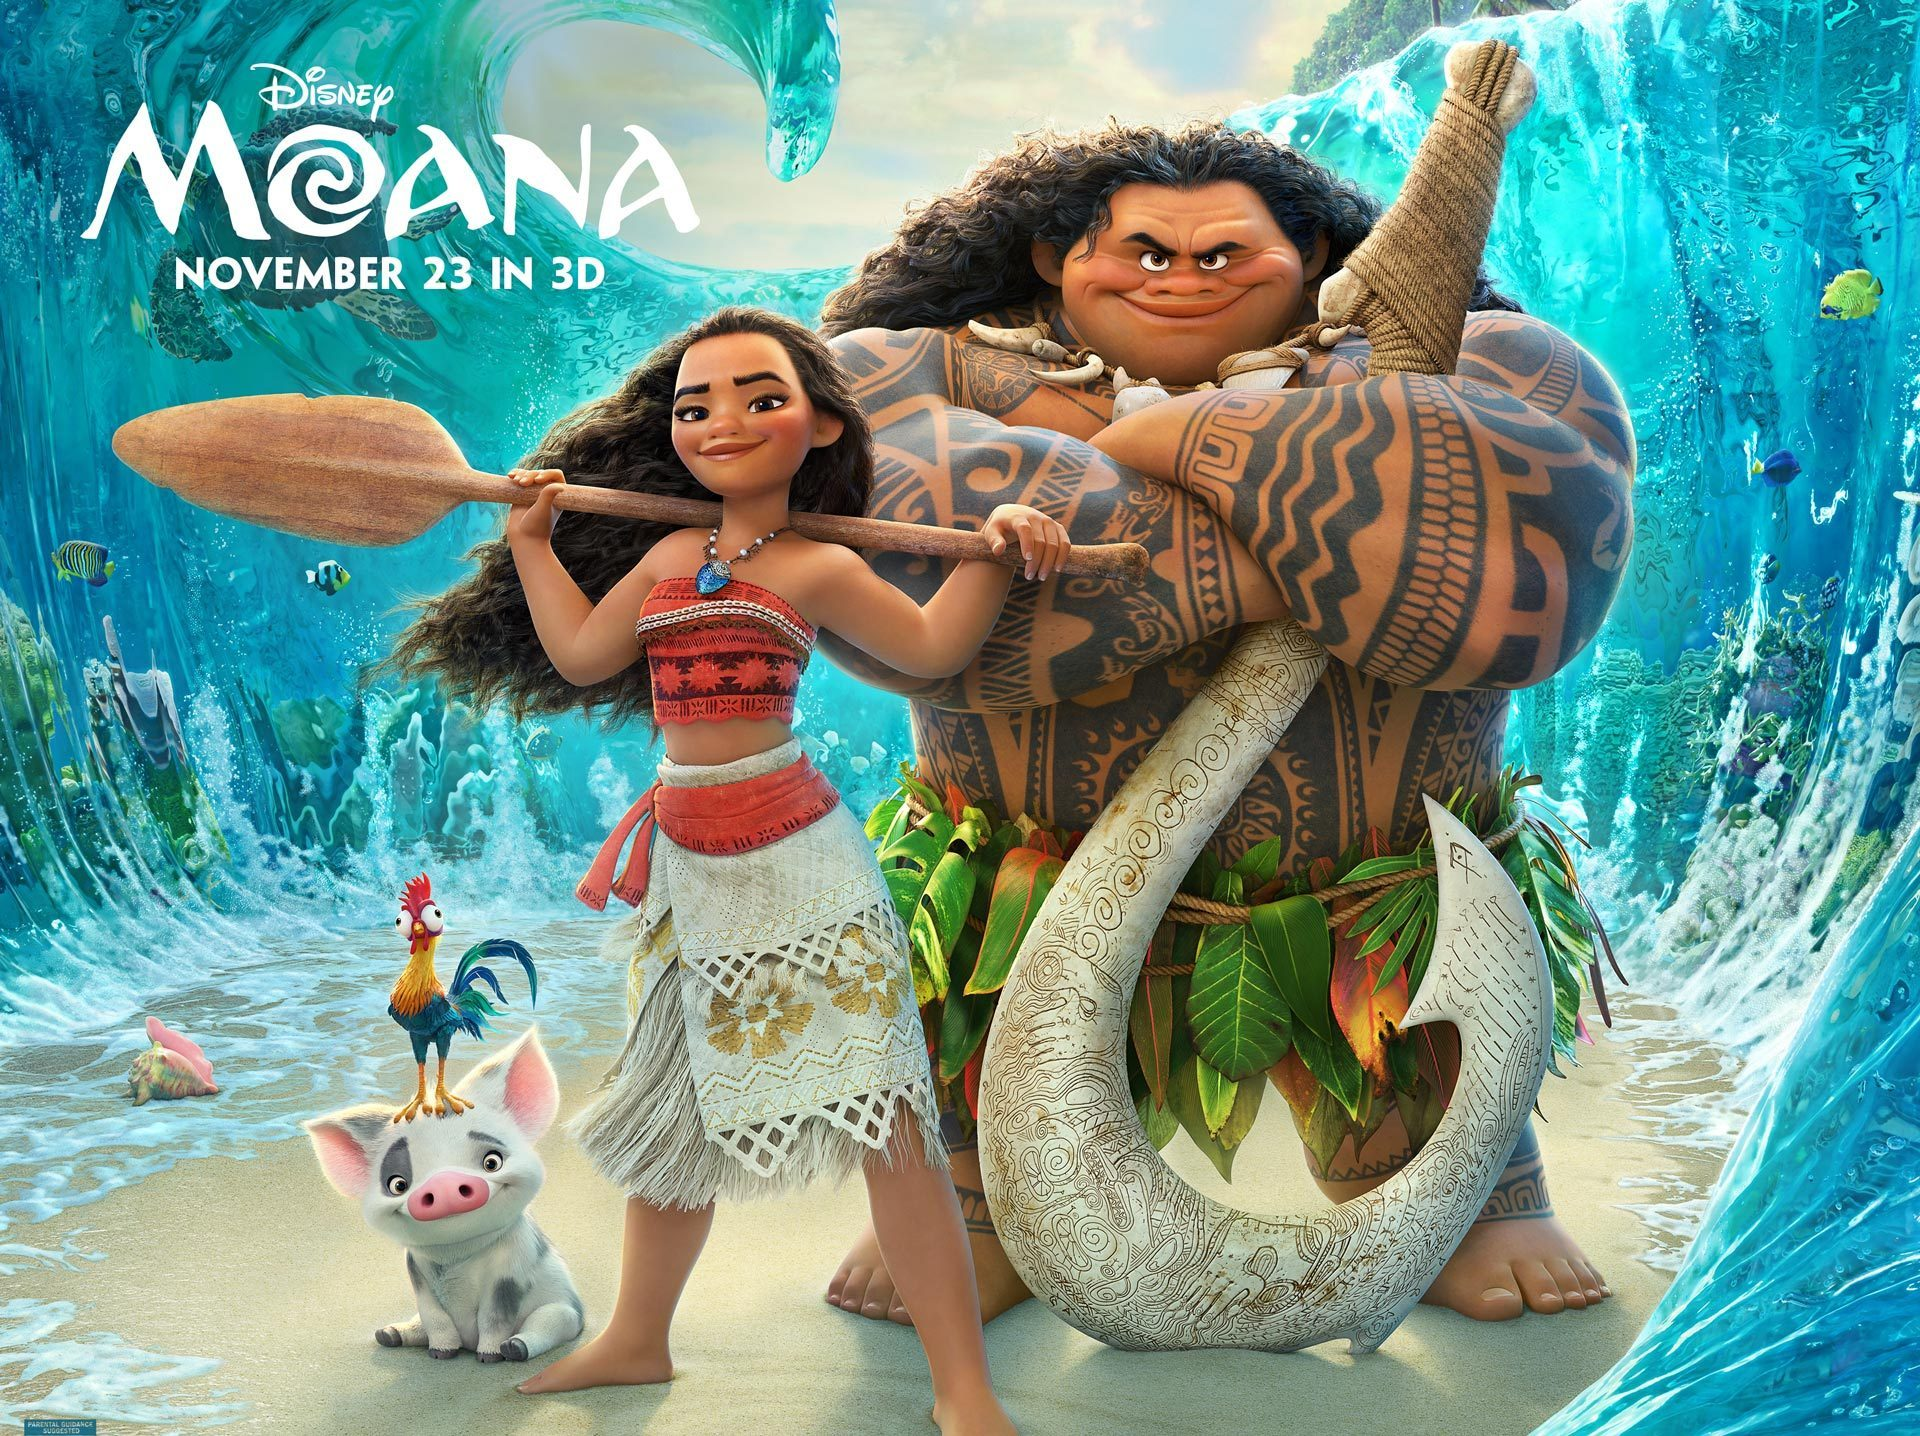 Moana: After Disney Animation's phenomenal Zootopia in March, the studio returns with the musical adventure Moana. From the directors of The Little Mermaid and Aladdin and starring Dwayne Johnson, Moana promises a thrilling adventure and unbelievable music, written by Alexander Hamilton himself, Lin-Manuel Miranda. Disney's impressive streak of amazing animated films will definitely continue with Moana, so get ready for when it comes out this Thanksgiving.